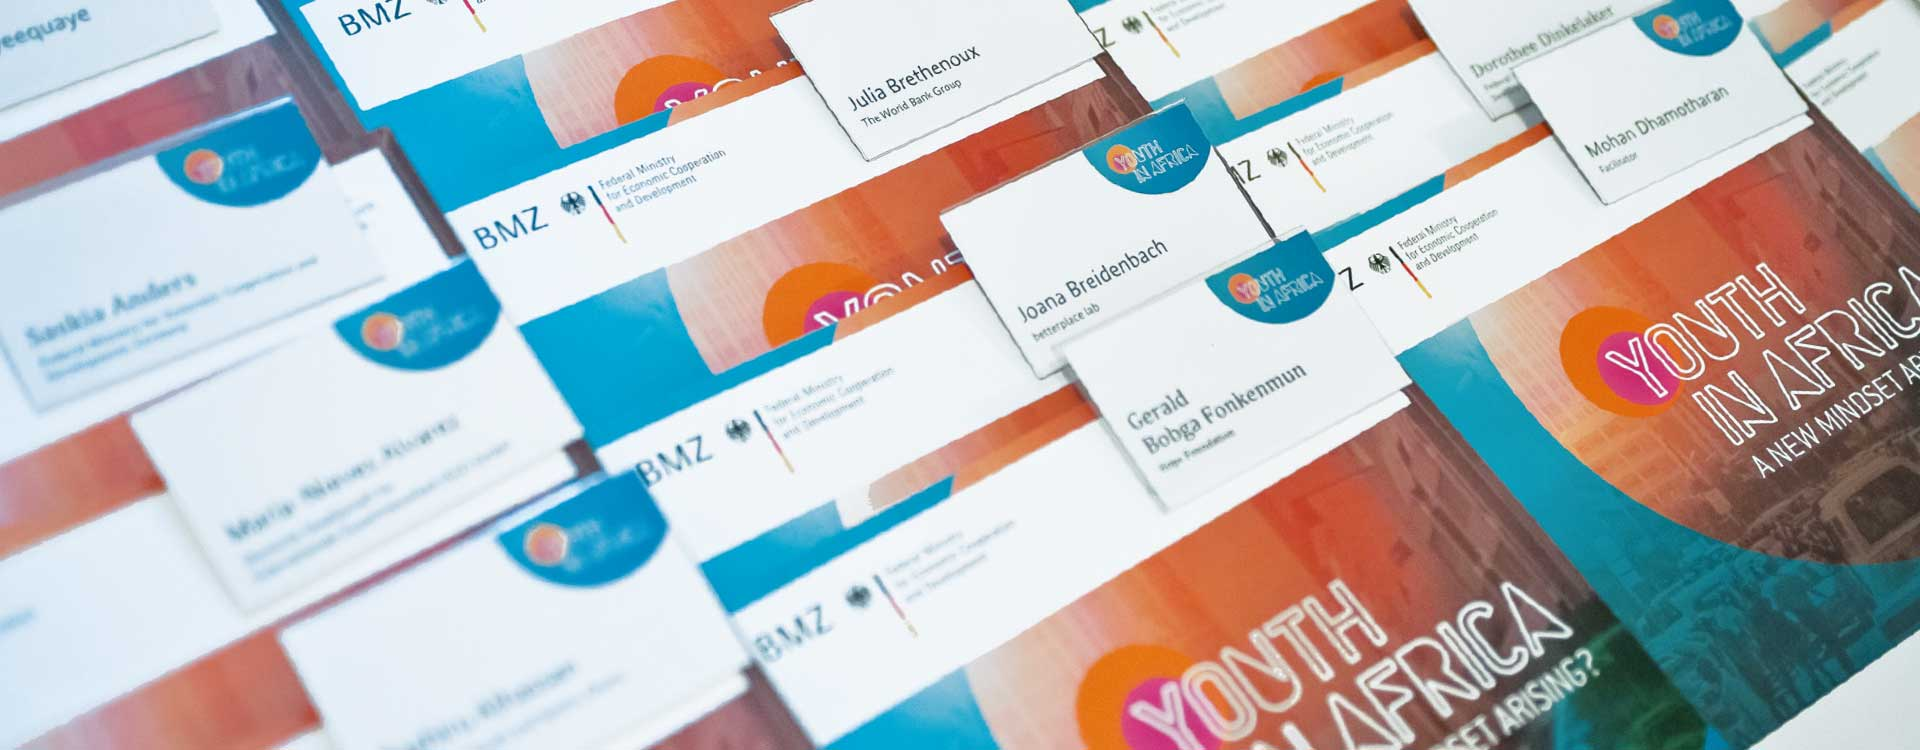 Folders and name badges for the Youth in Africa conference held by the BMZ in the Umspannwerk Kreuzberg, Berlin; Design: Kattrin Richter | Graphic Design Studio